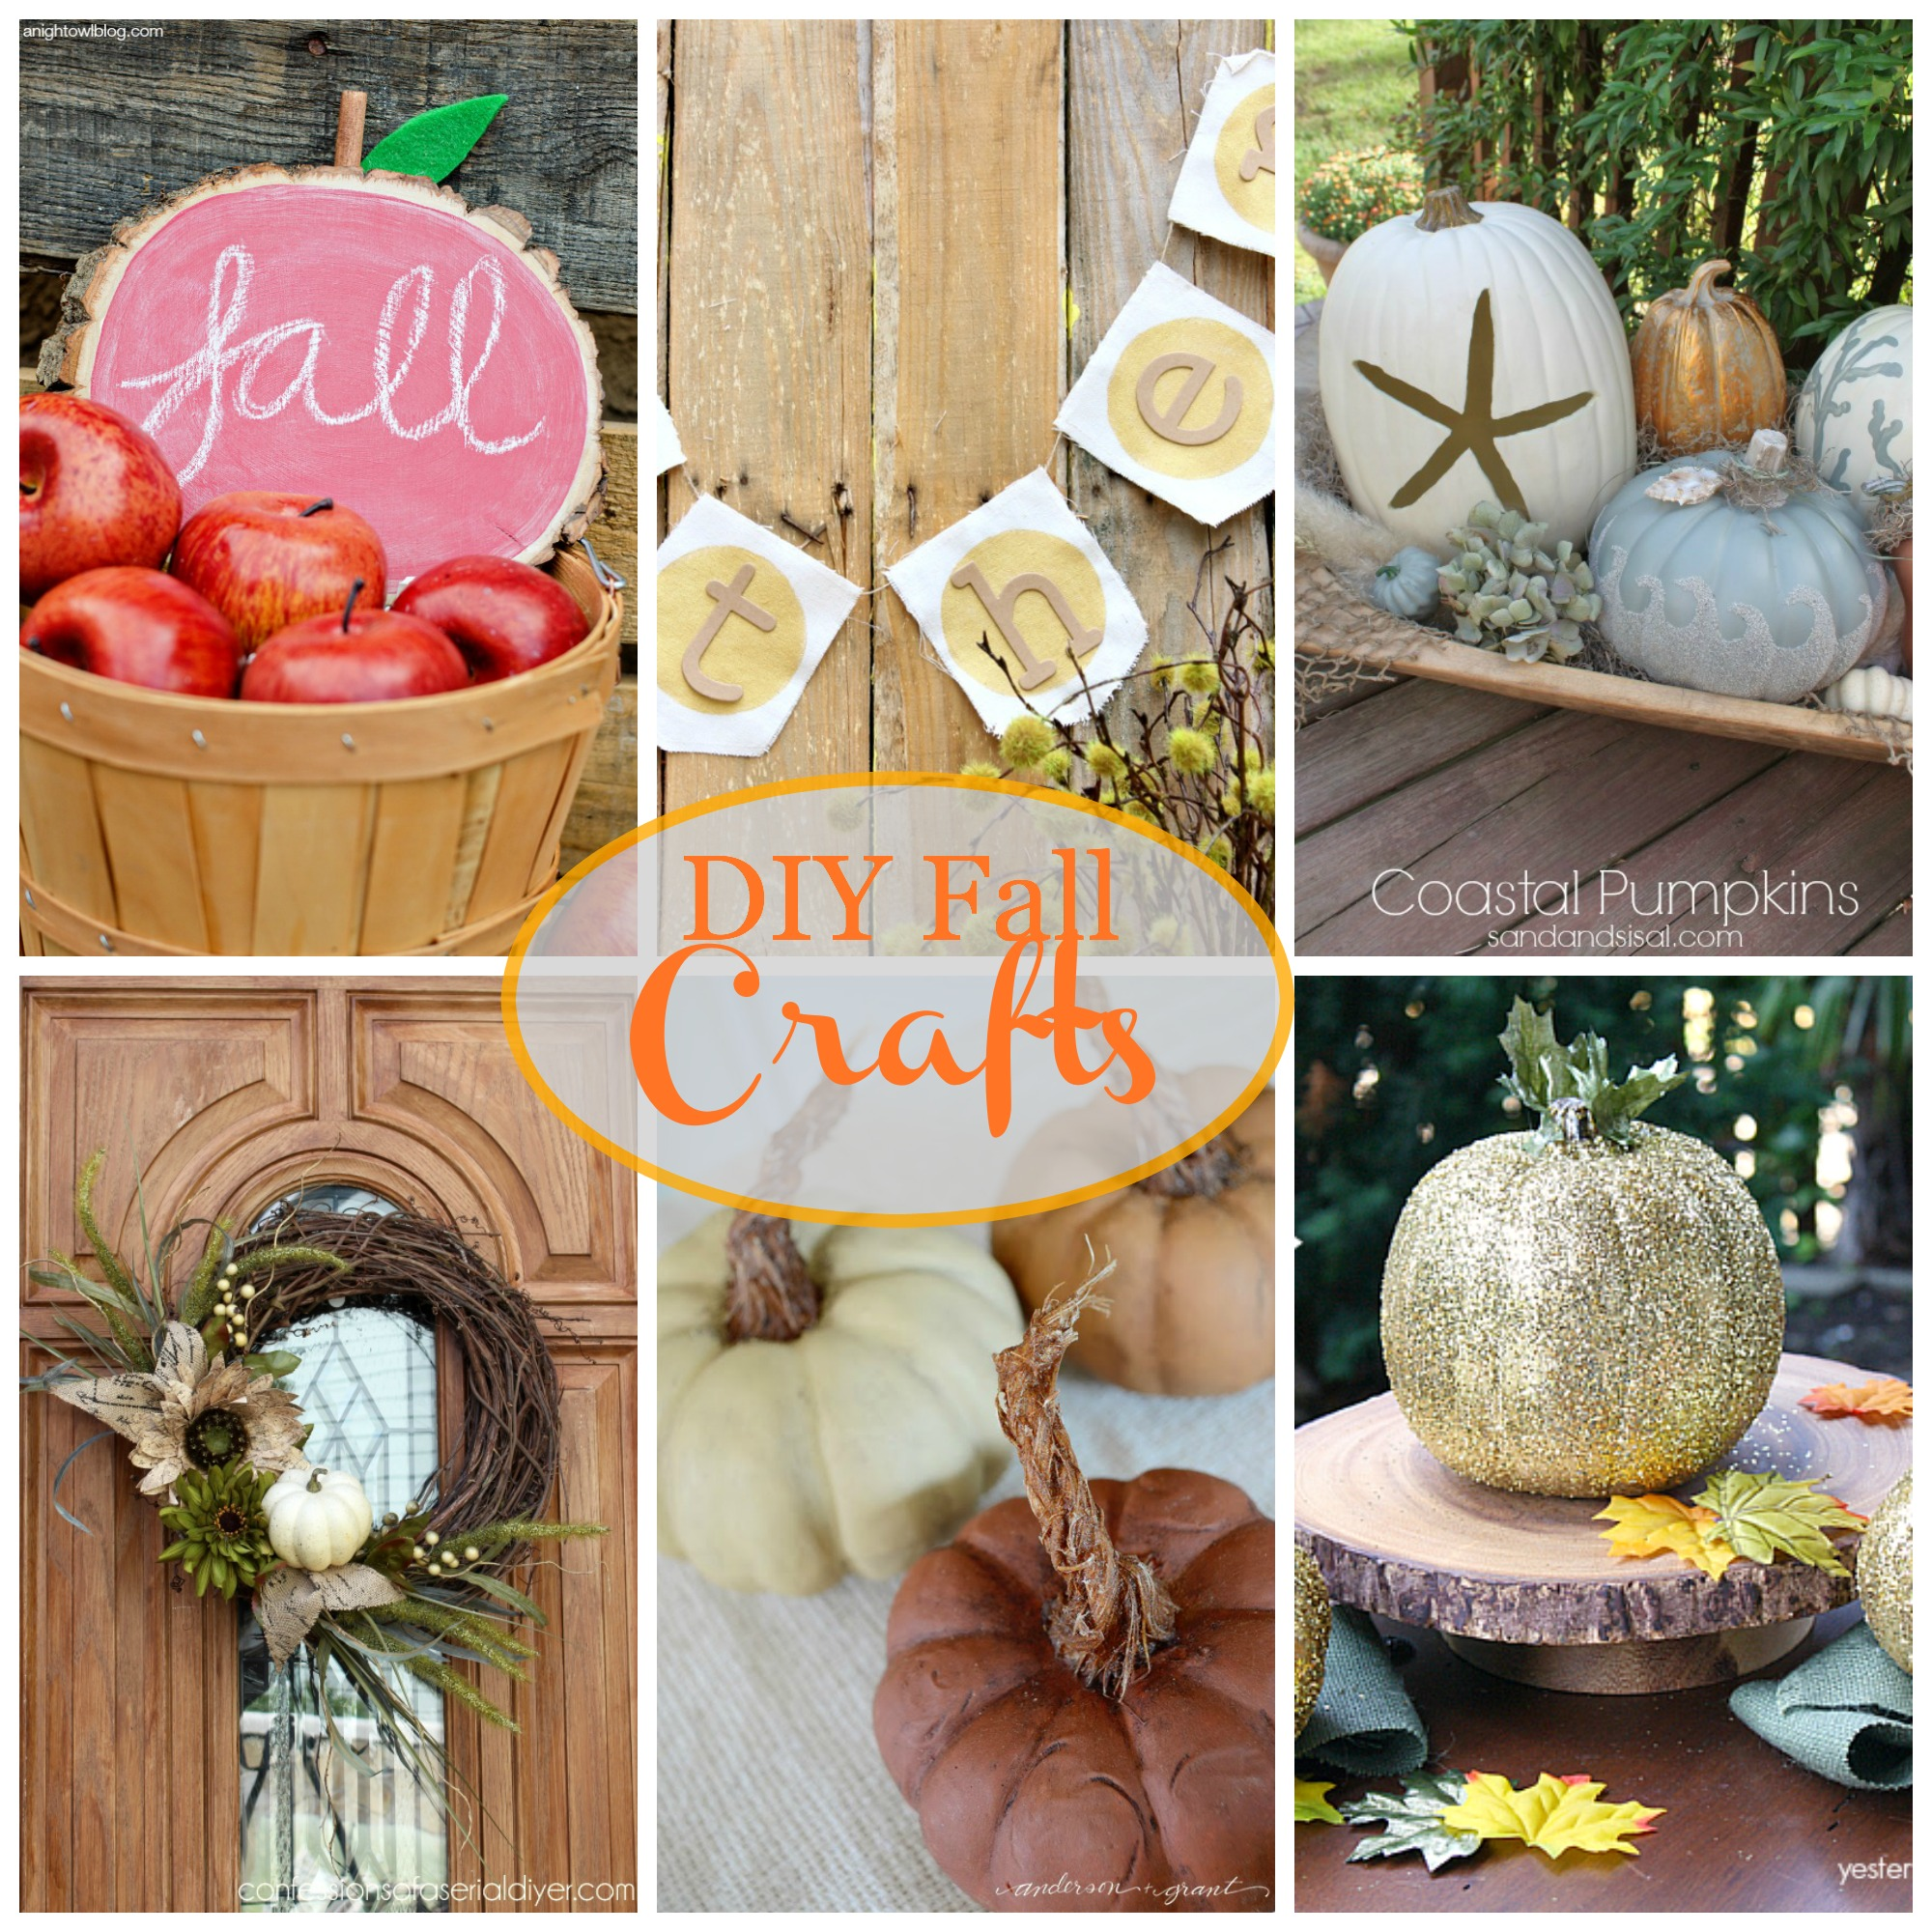 Diy fall crafts for Fall diy crafts pinterest